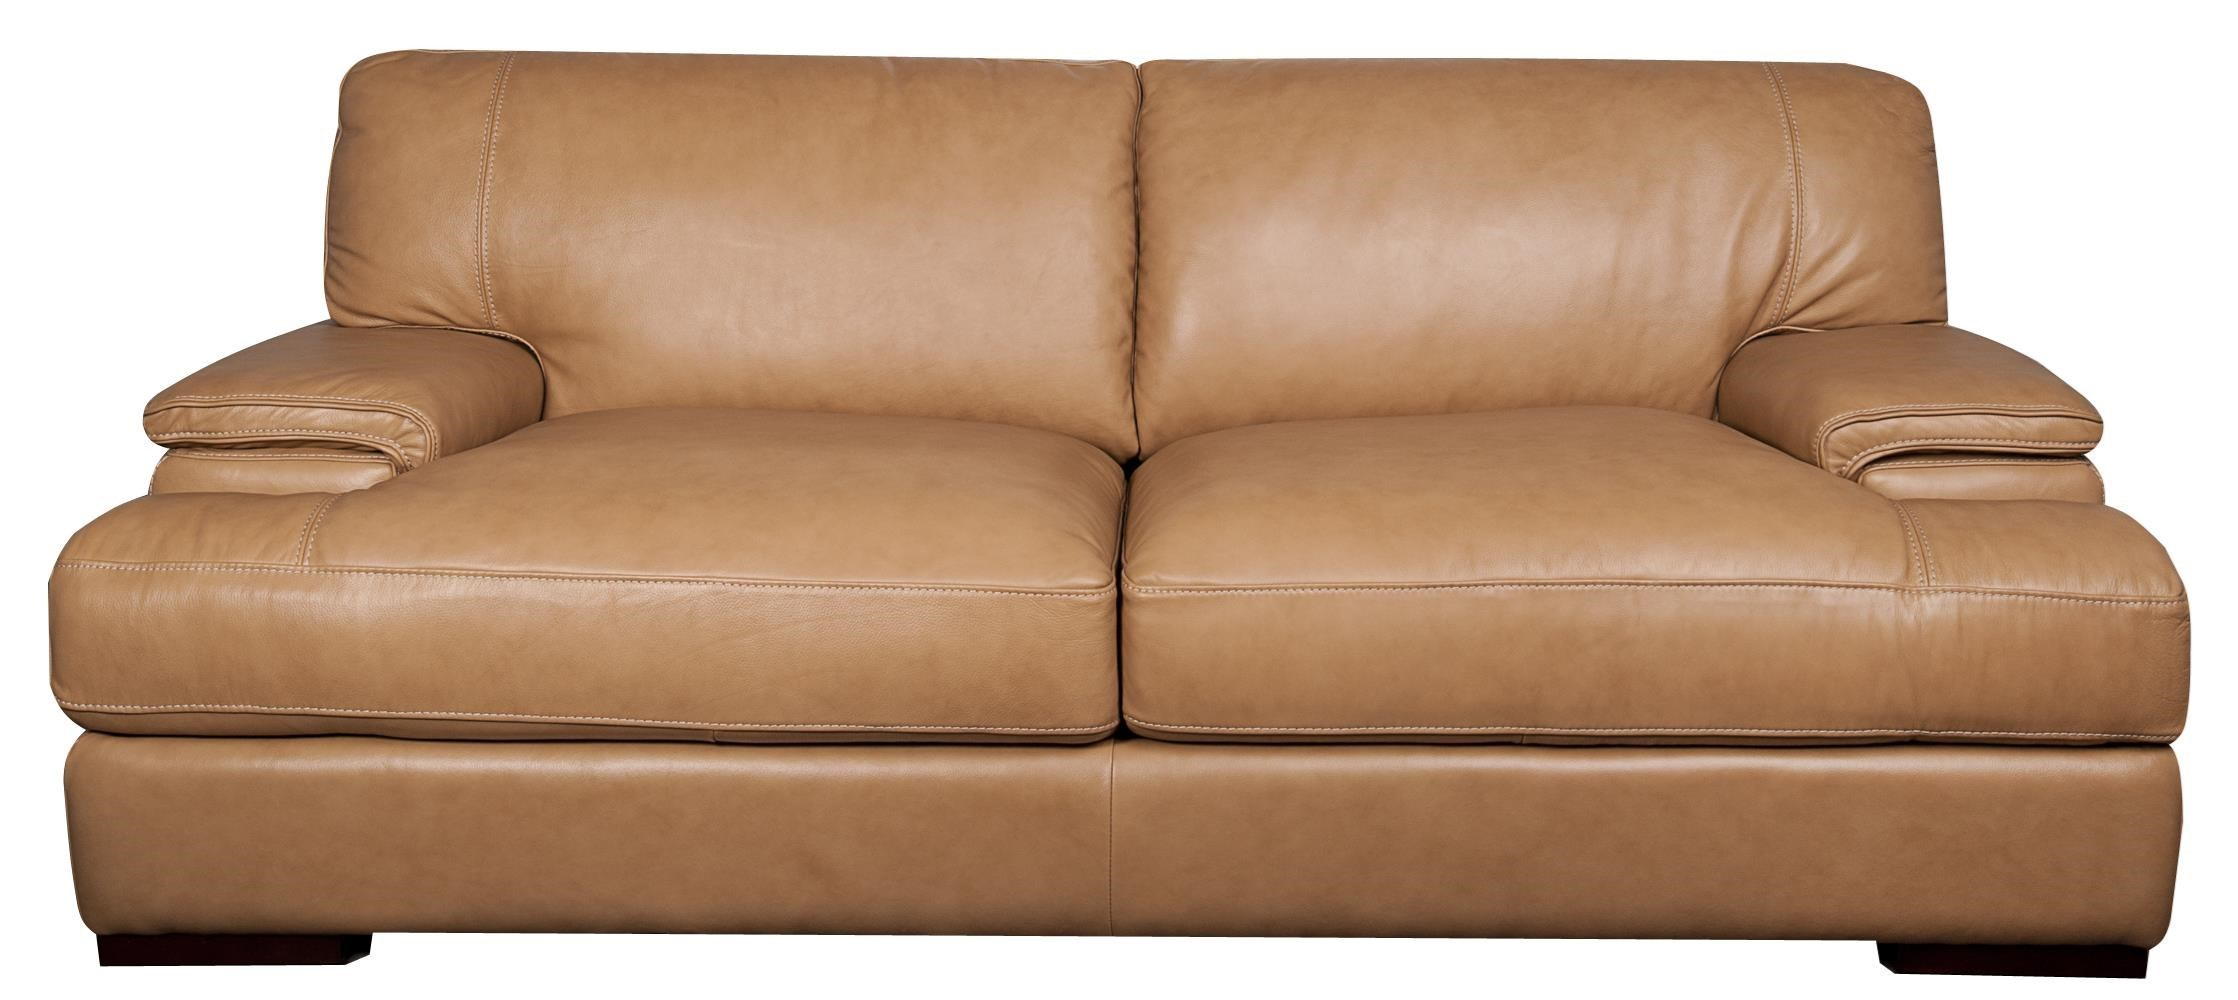 Morris Home Furnishings TitusTitus 100% Top Grain Leather Sofa ...